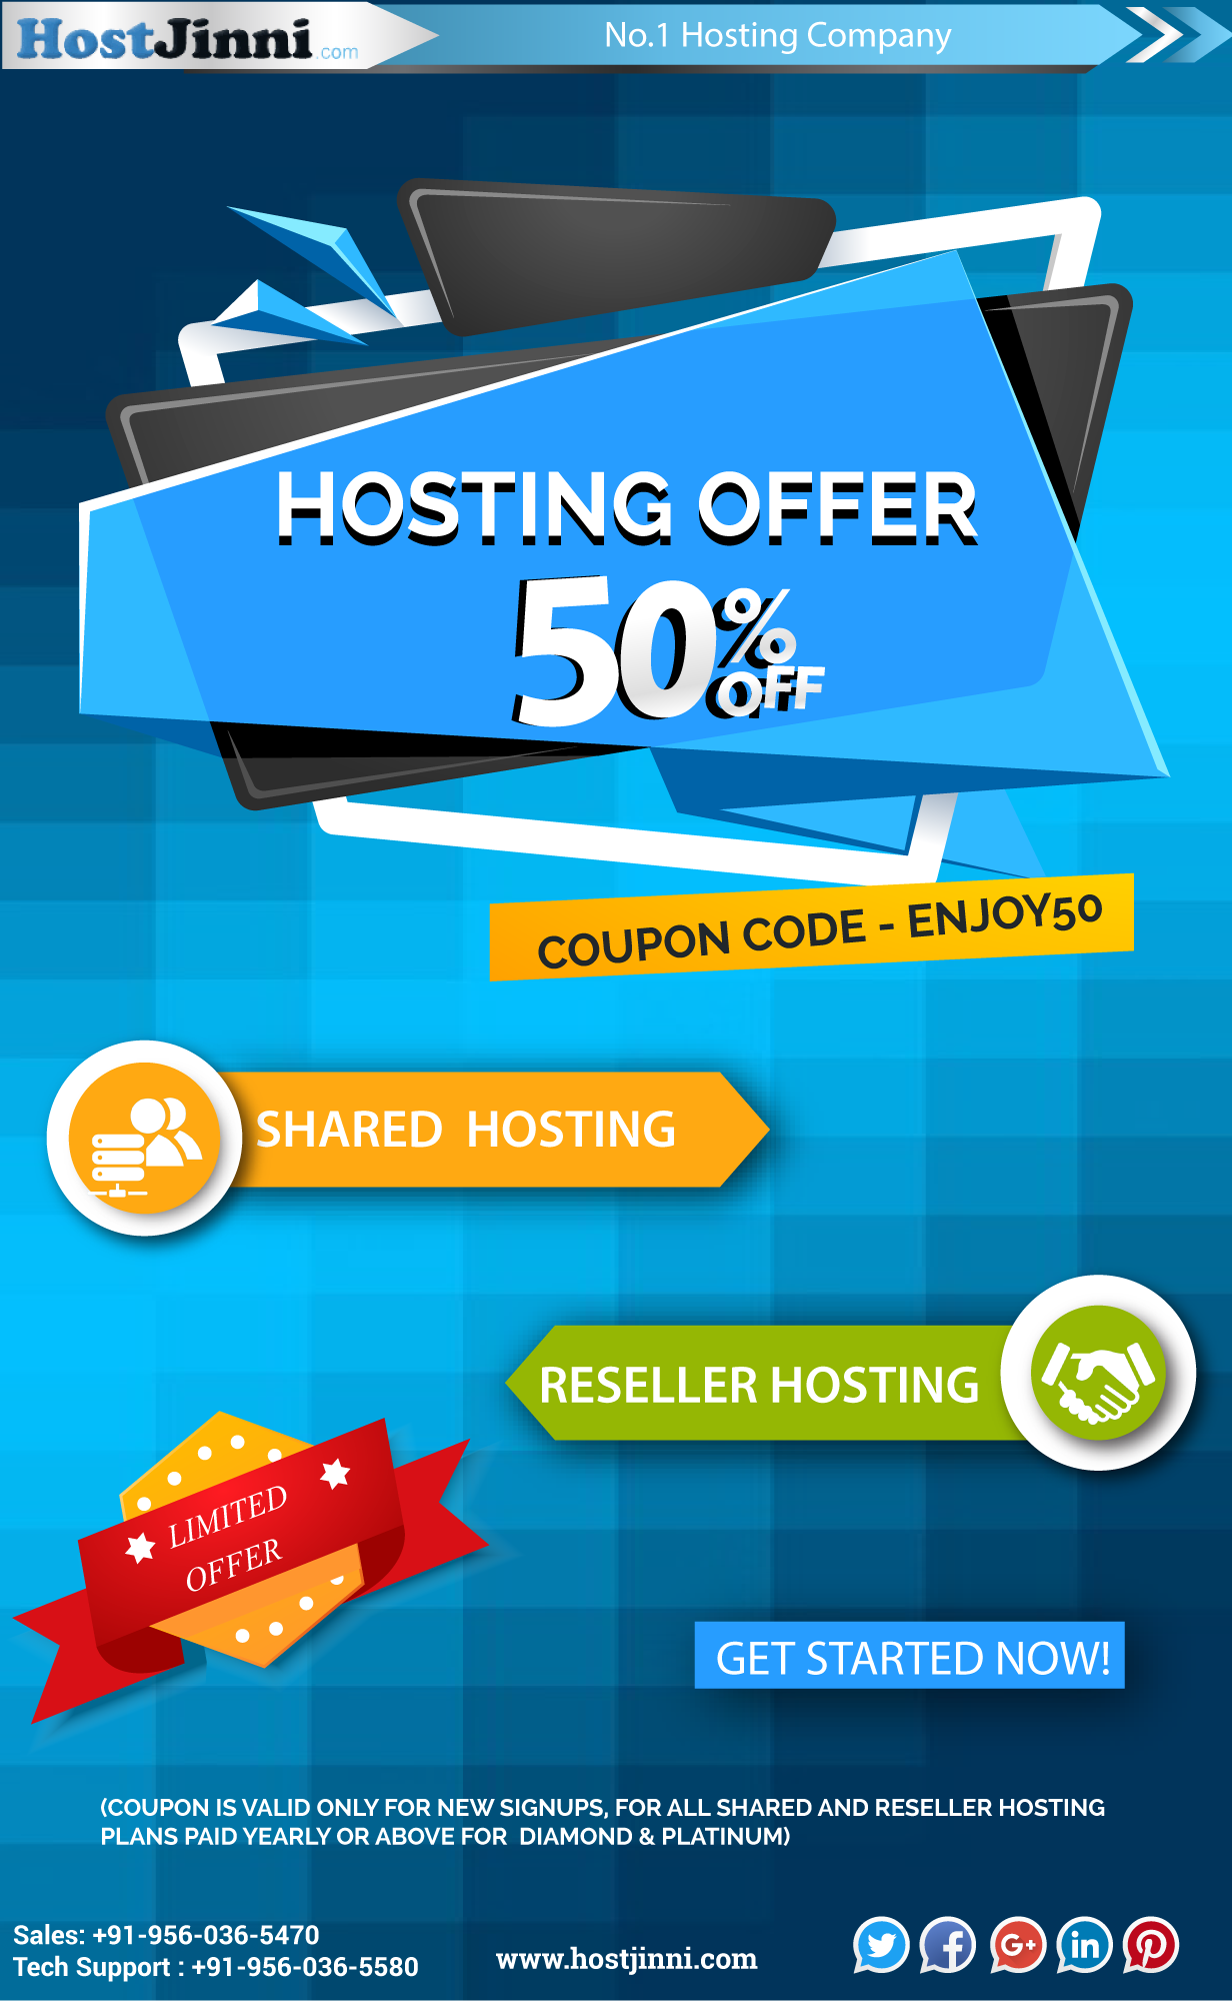 BEST HOSTING OFFER 2018 50 DISCOUNT COUPON CODE